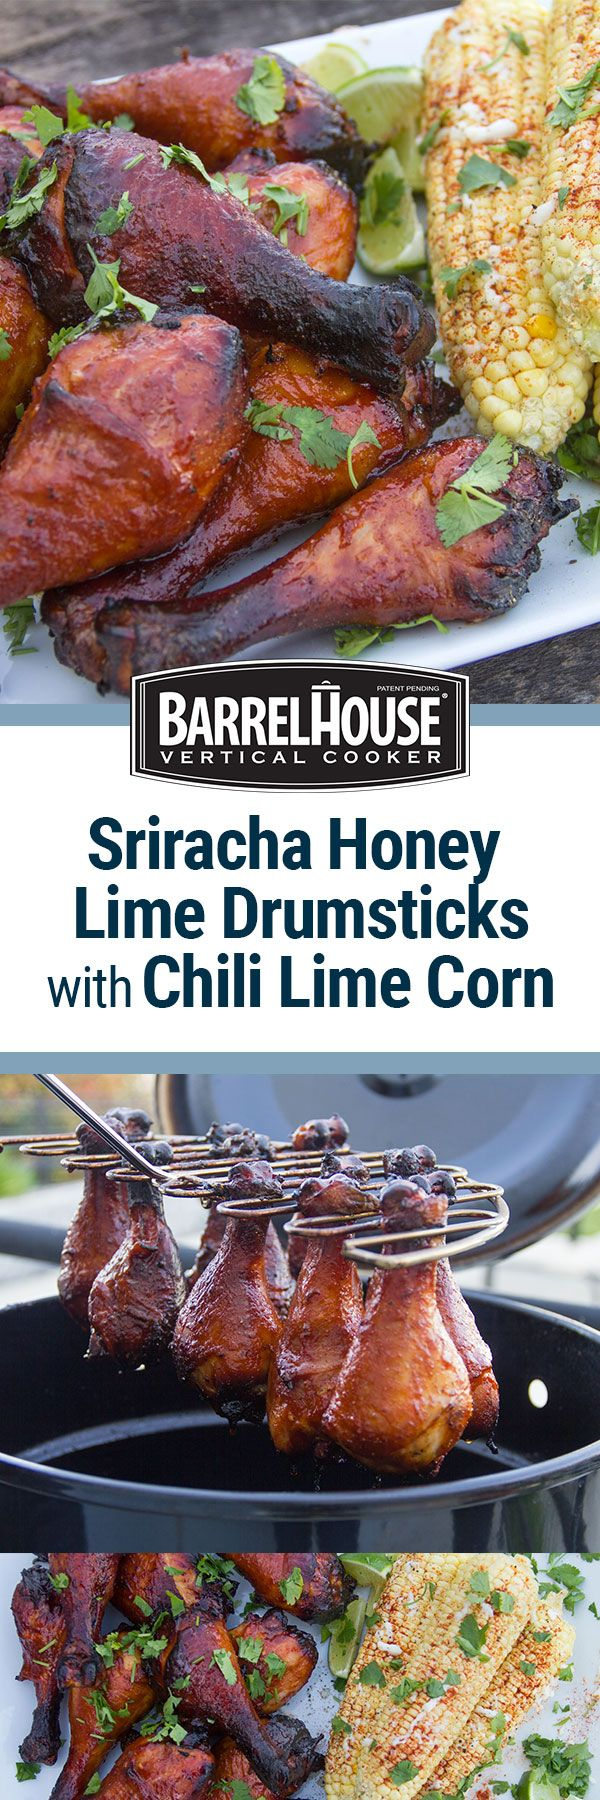 Sweet and spicy Sriracha Honey Lime Chicken Drumsticks paired with Chili Lime Corn are an easy, delicious way to kick up the heat while staying out of it this summer. Smoked in the Barrel House Cooker or on your pellet grill (like Traeger) or offset smoker, this summer bbq chicken recipe is sure to be a hit!